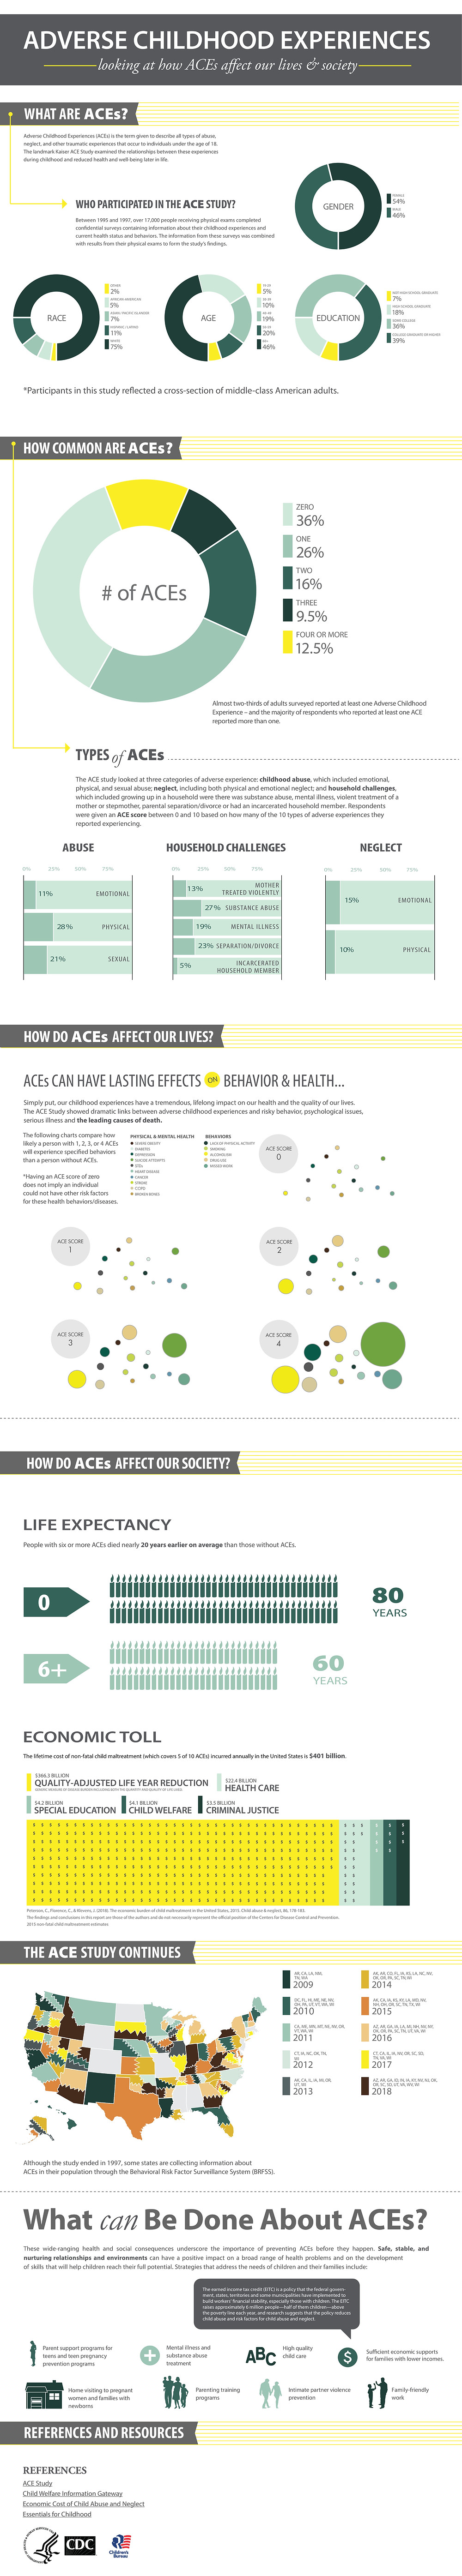 How adverse childhood experiences (ACEs) affect lives and society